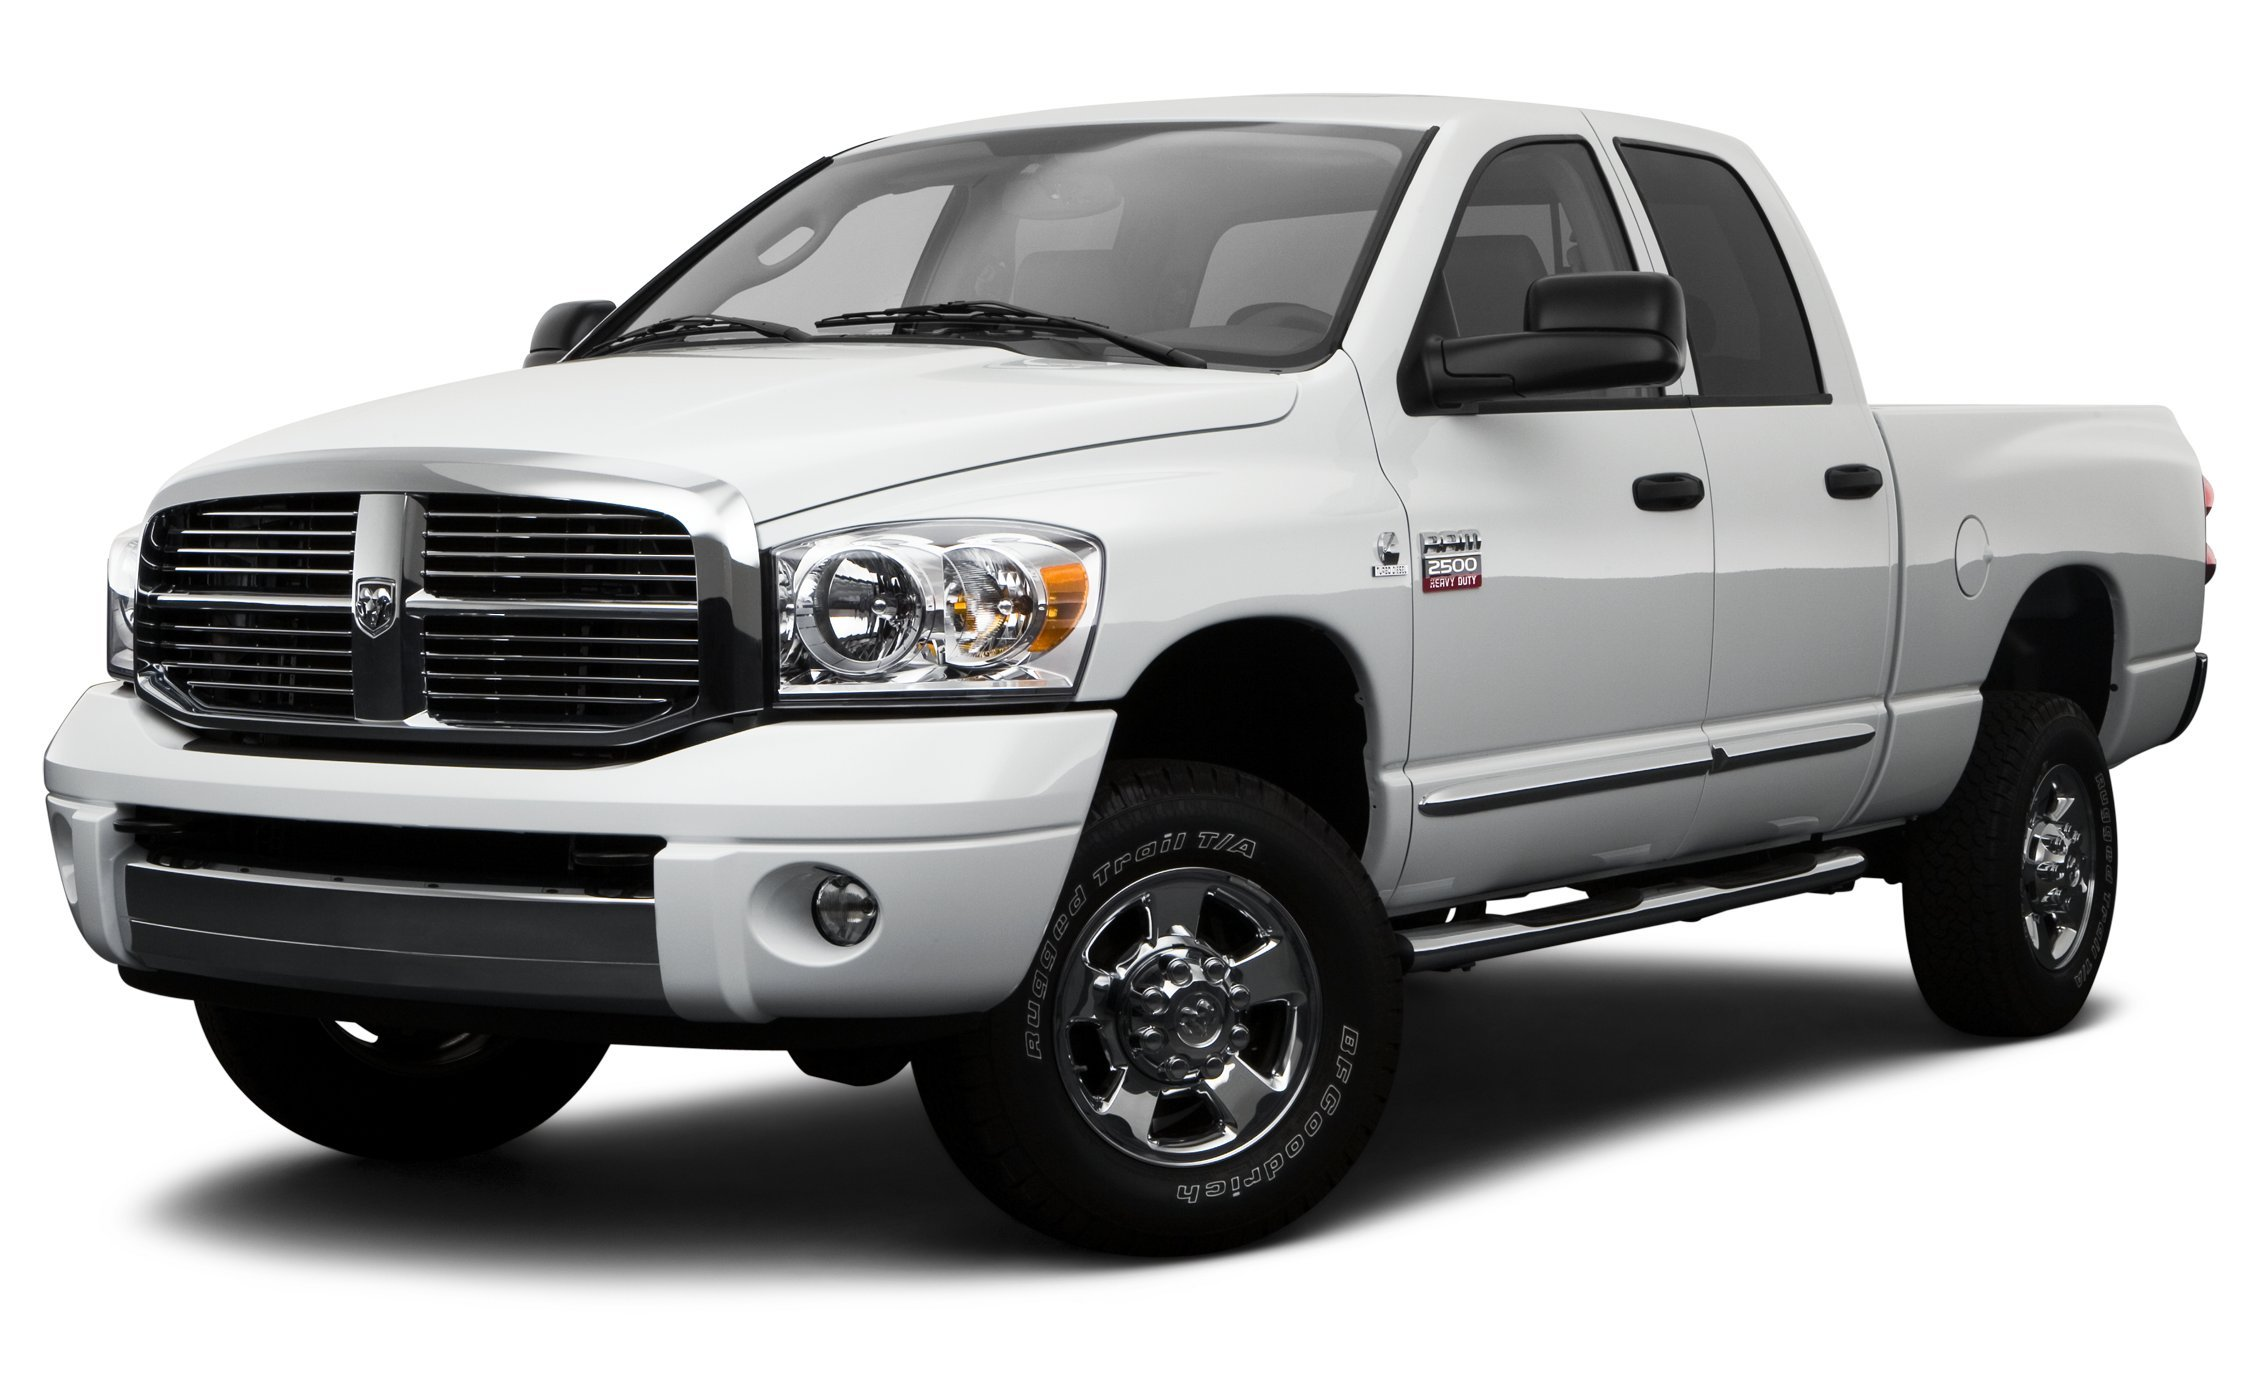 2008 dodge ram 1500 reviews images and specs vehicles. Black Bedroom Furniture Sets. Home Design Ideas